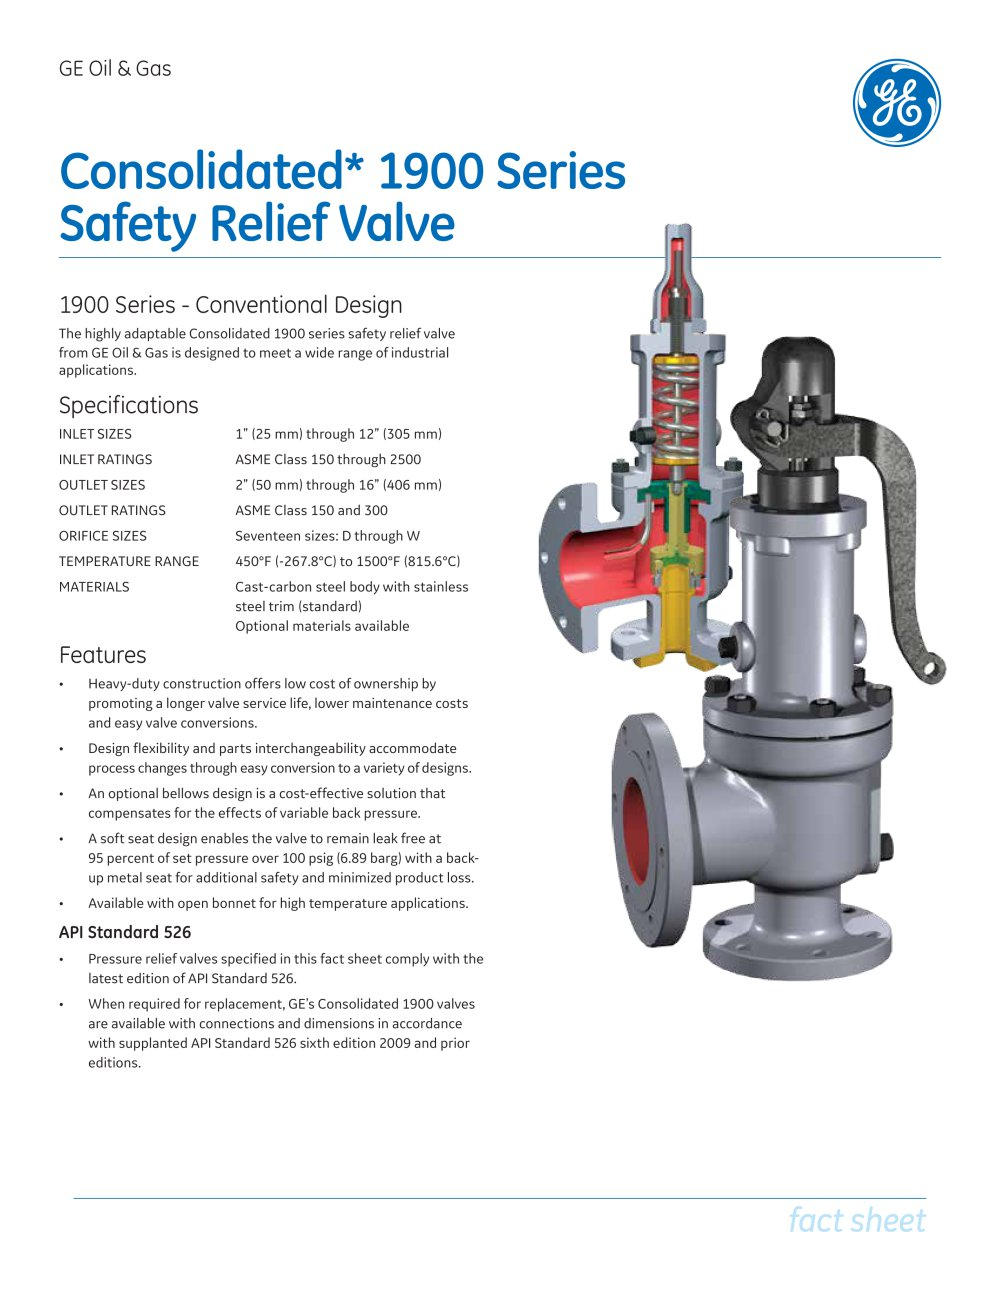 Consolidated Type 1900 Safety Relief Valve Universal Media 1 4 Pages